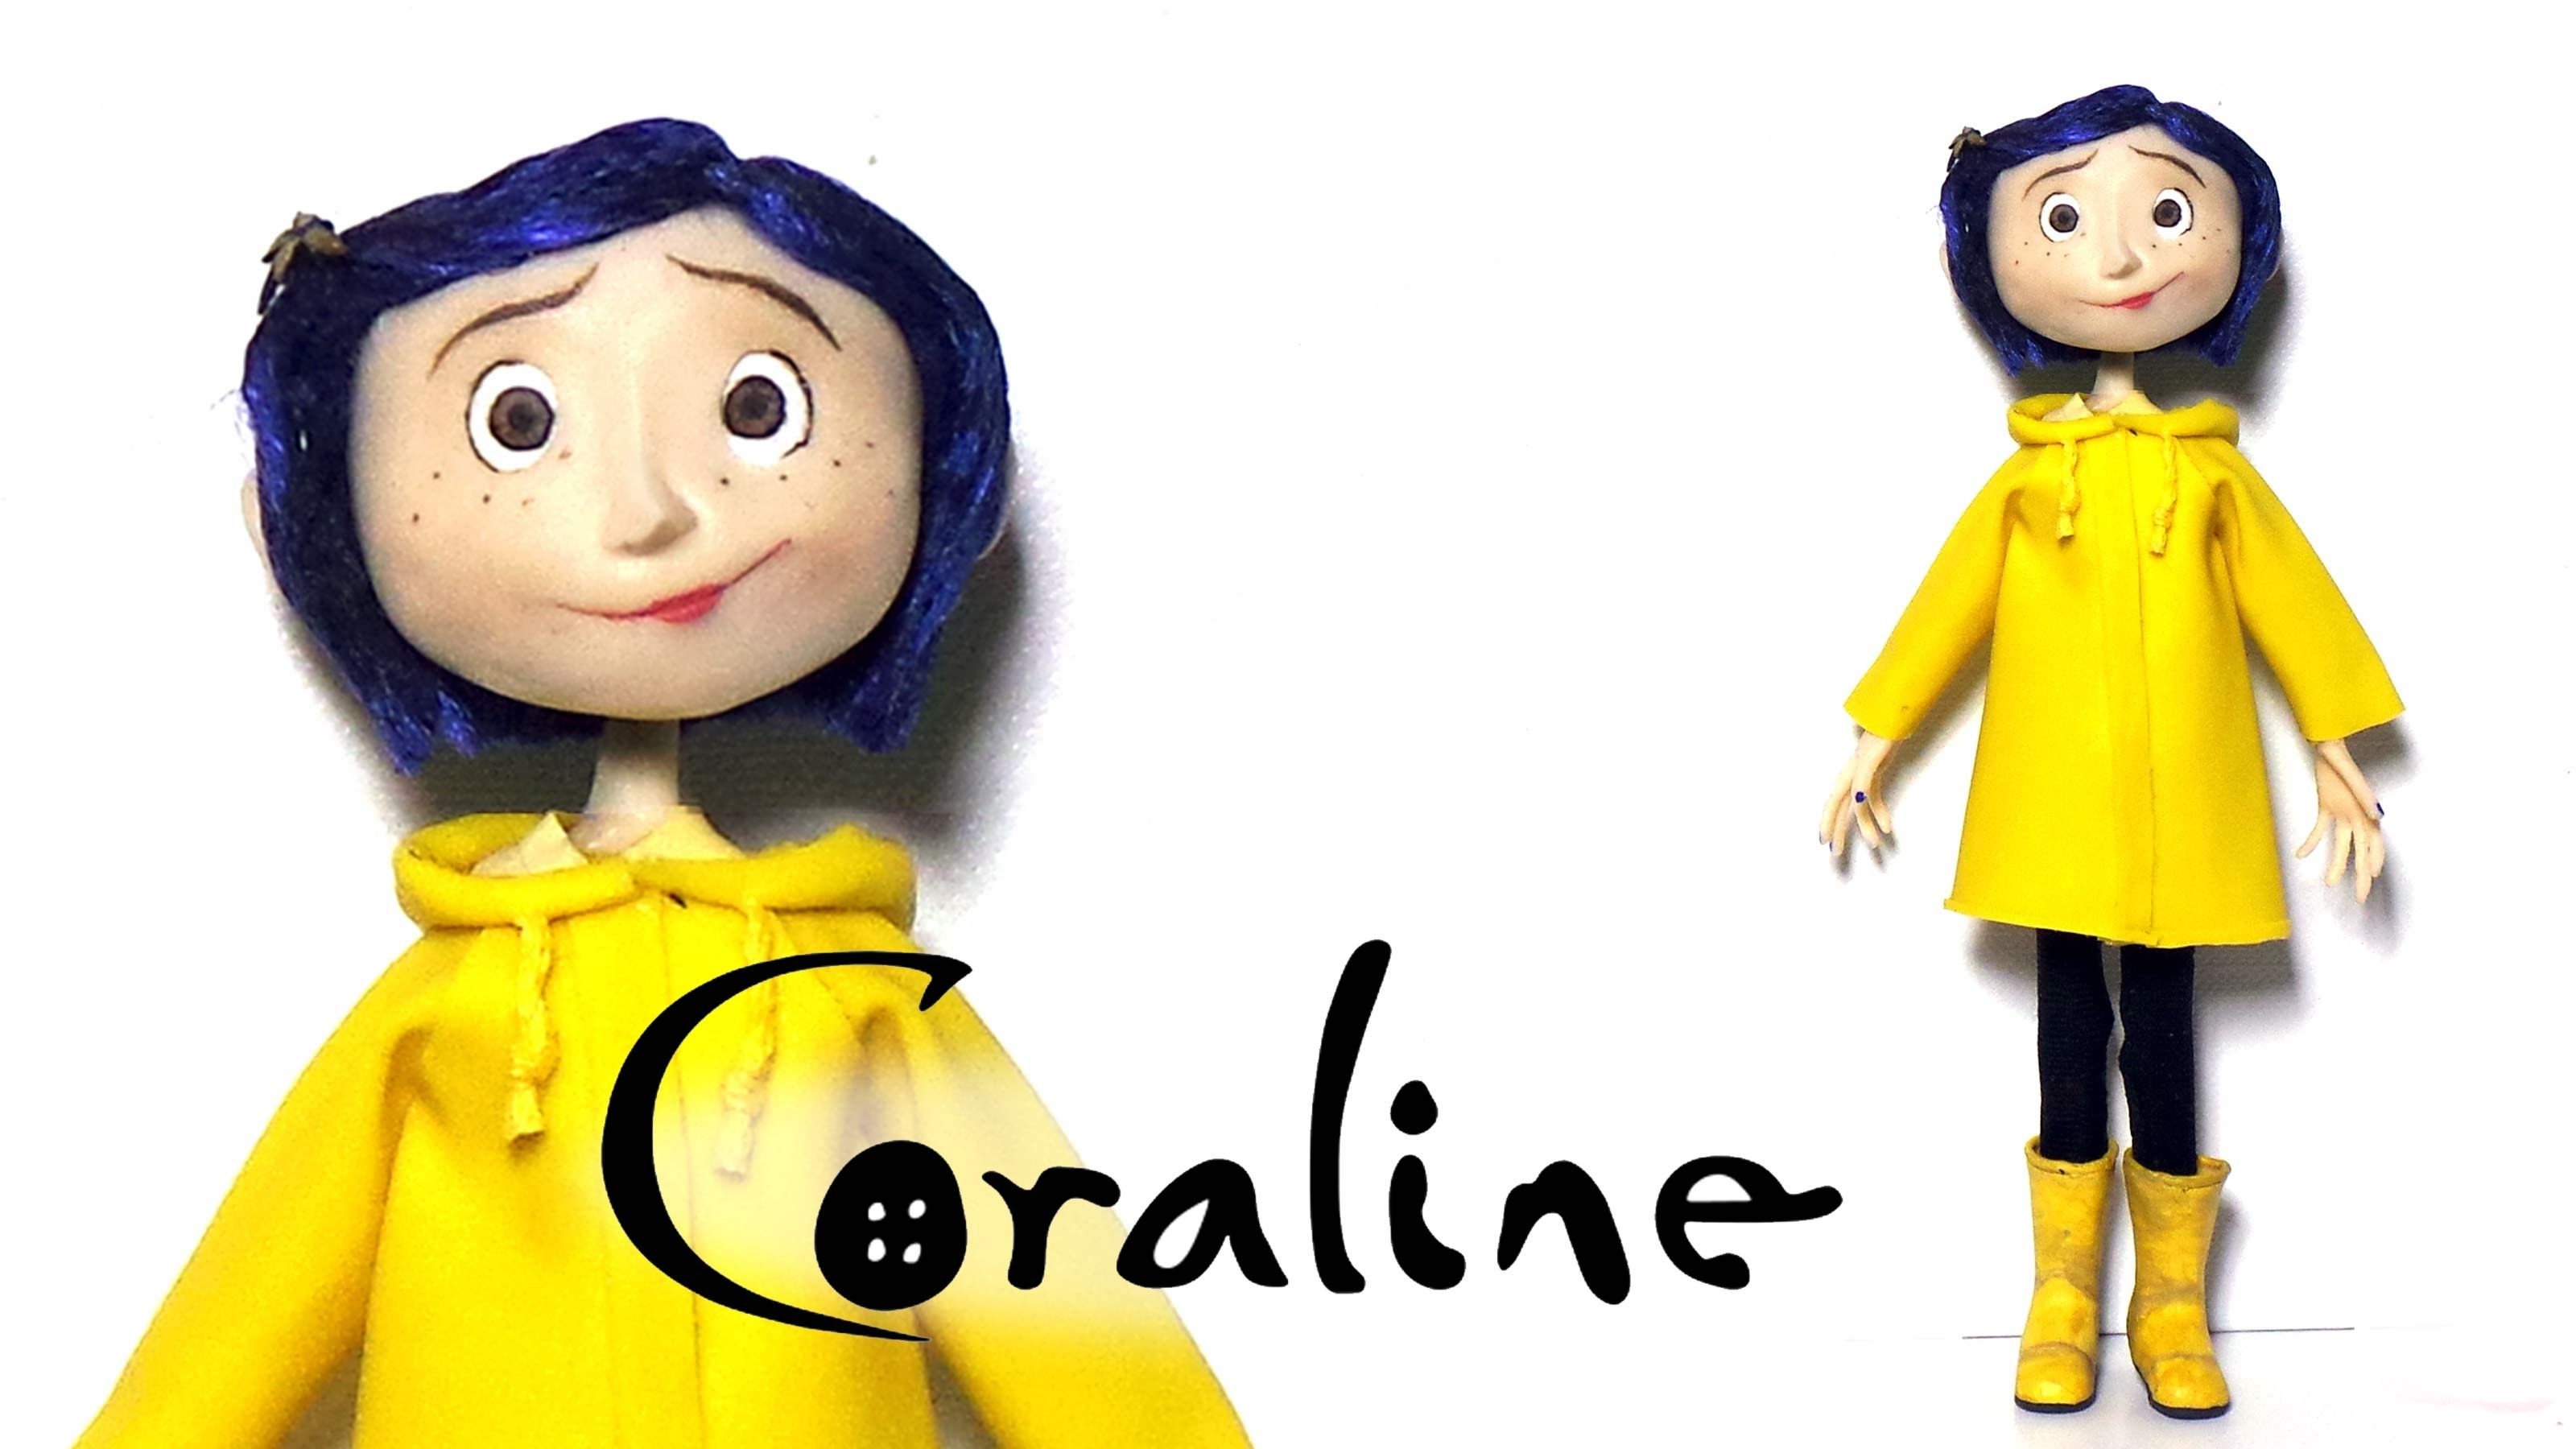 Coraline Inspired Poseable Doll Polymer Clay Tutorial Polymer Clay Tutorial Coraline Coraline Doll